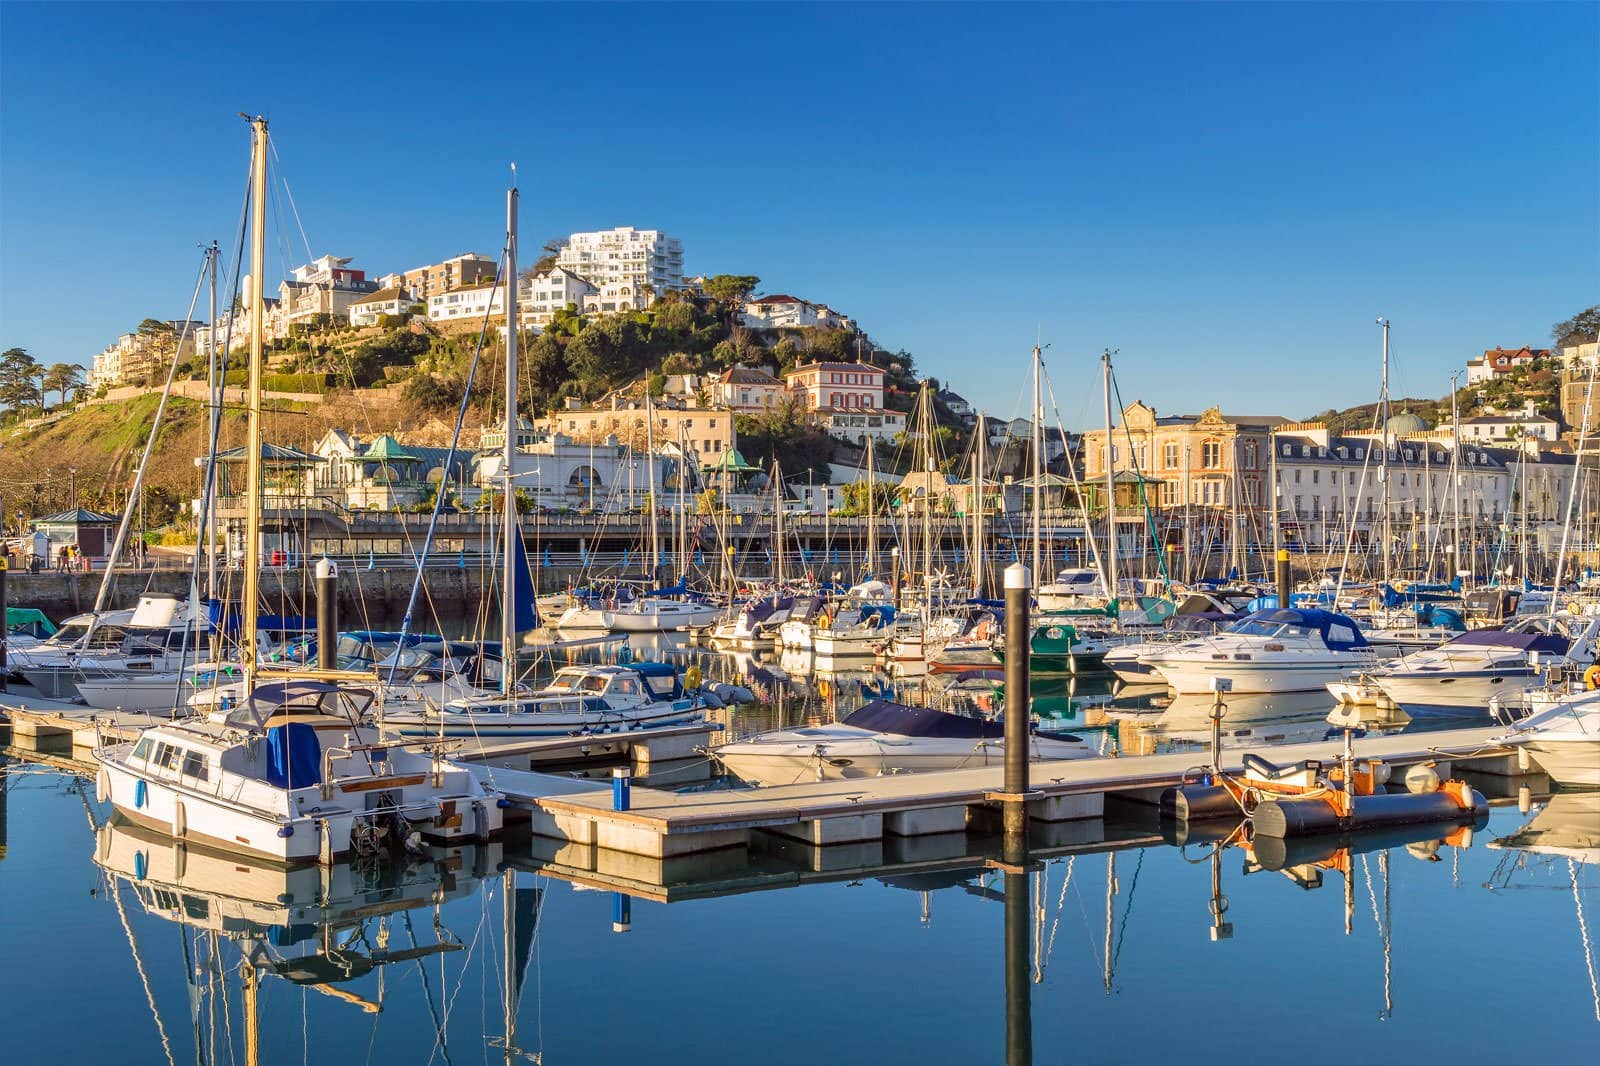 10 Best Things to Do in Torquay - What is Torquay Most Famous For?